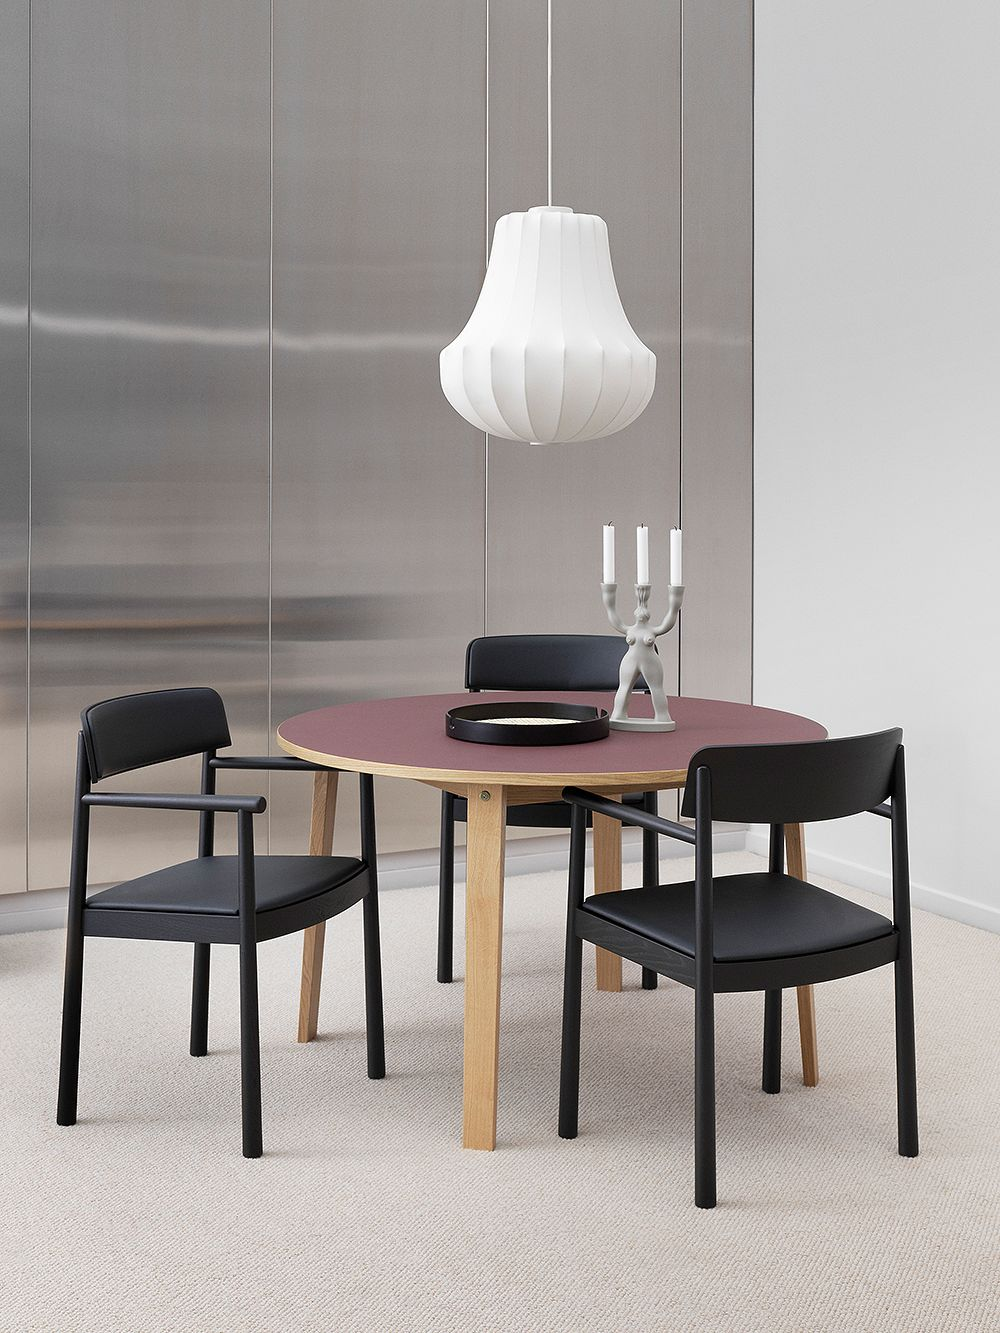 Normann Copenhagen 3 Days of Design 2020